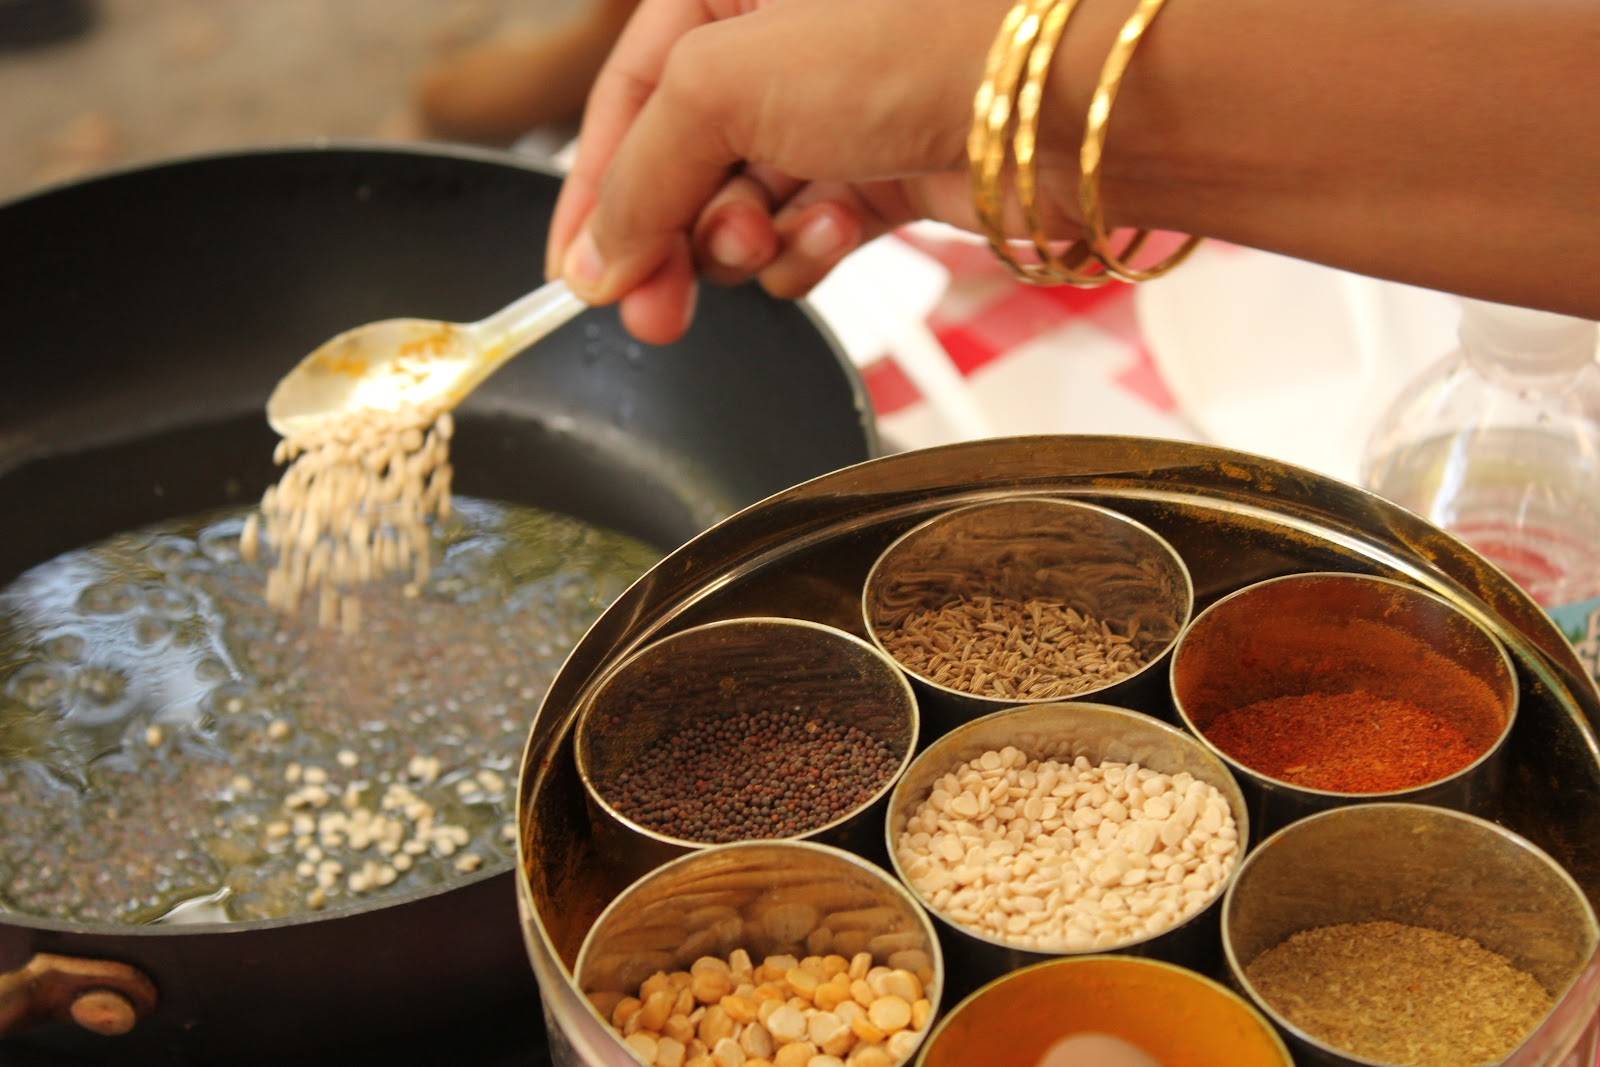 urad dal and Indian spice box (dhaba)